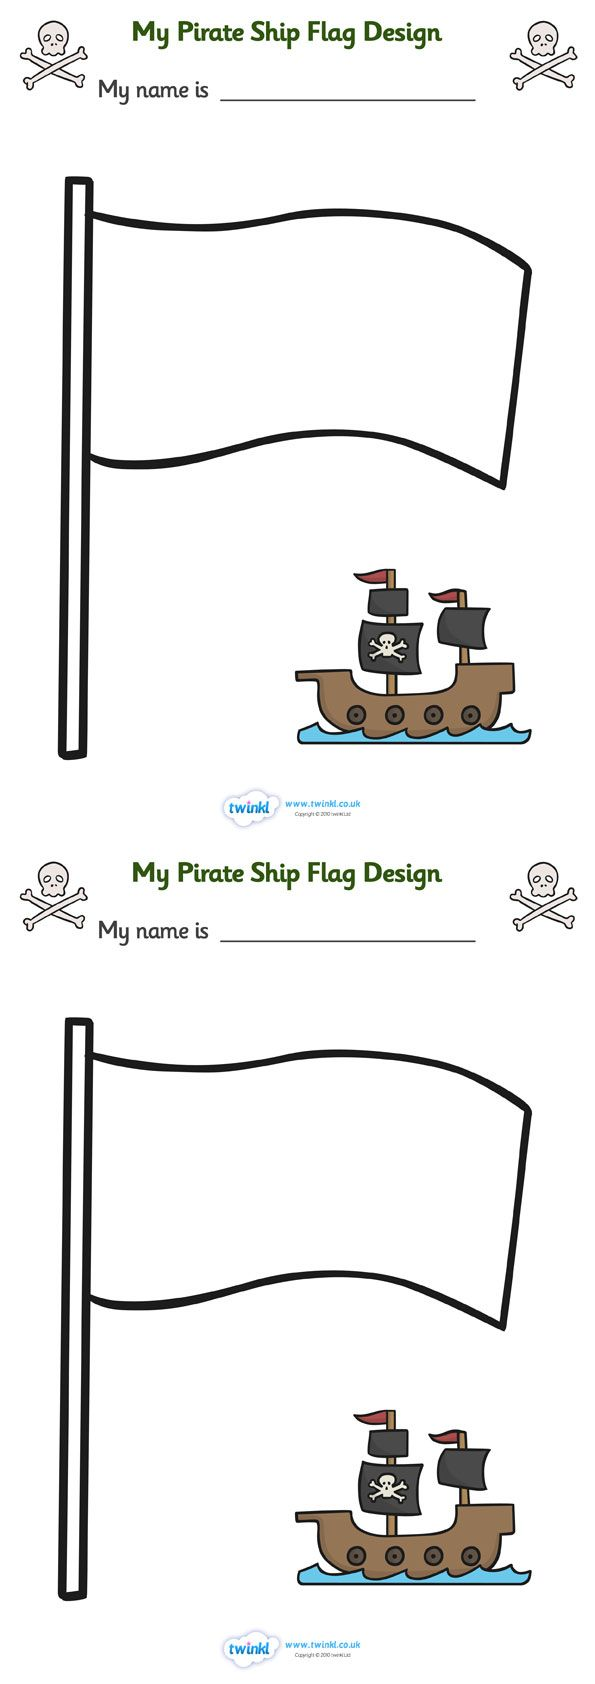 Twinkl Resources >> Design Your Own Ship Flag Worksheet  >> Thousands of printable primary teaching resources for EYFS, KS1, KS2 and beyond! worksheets, flag design worksheets, flags, design worksheets, flag template, pirate worksheet,